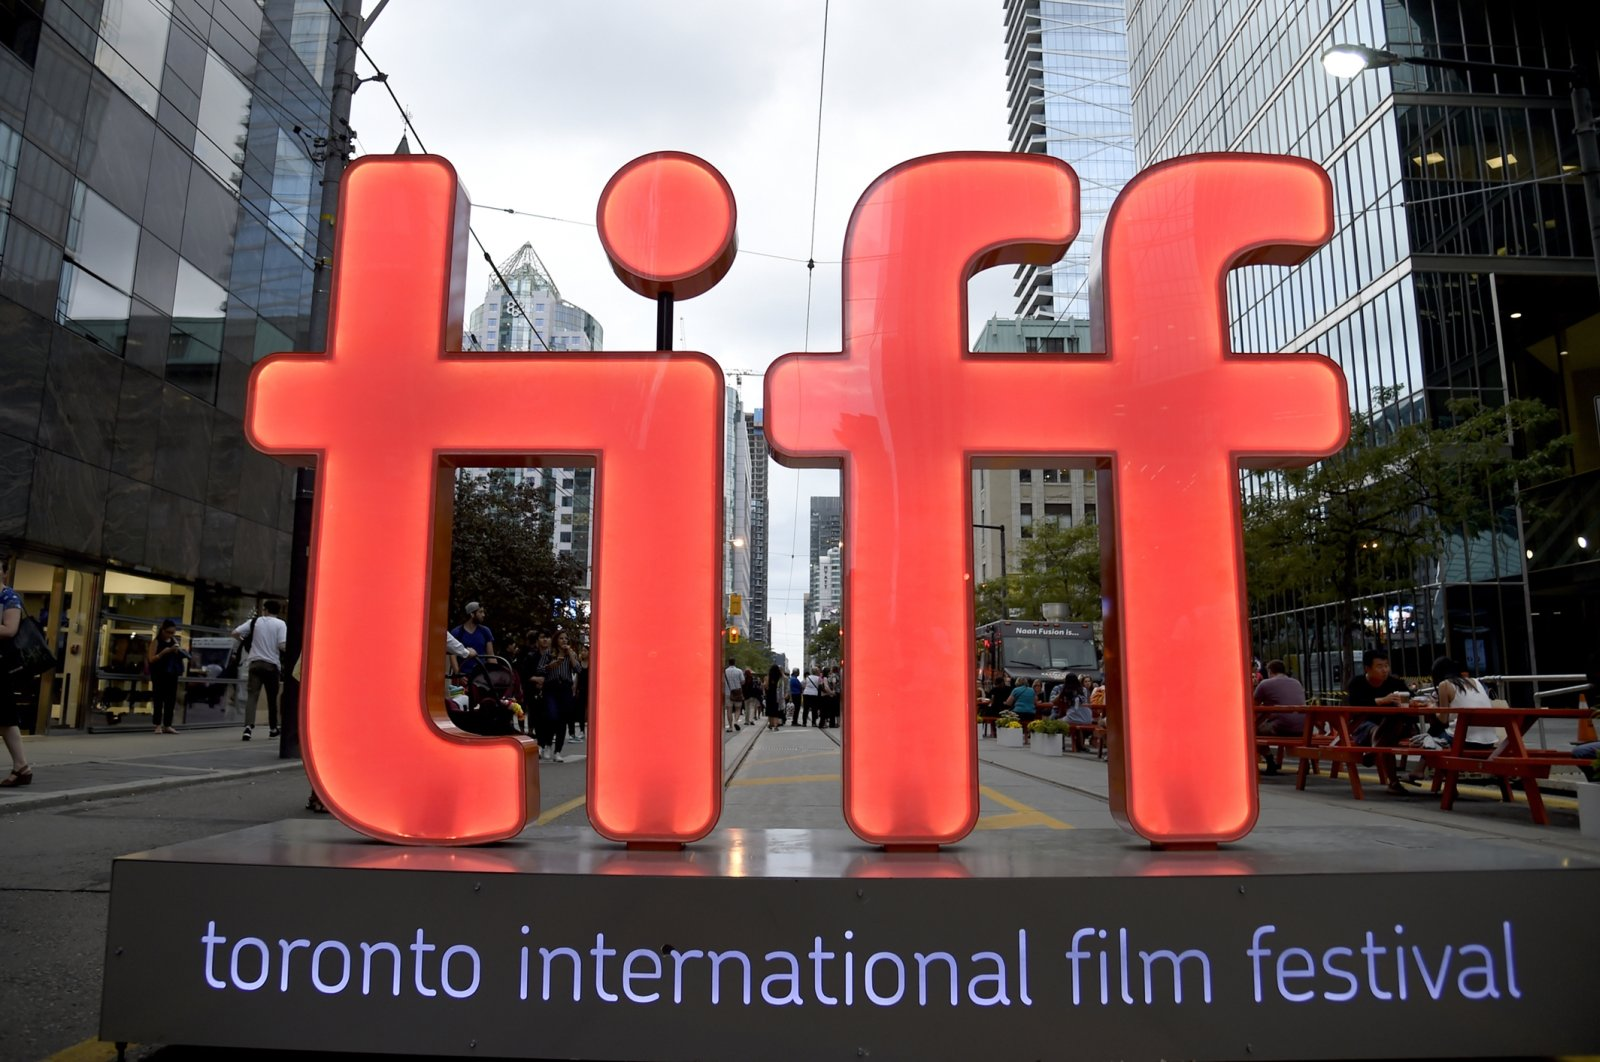 A view of a festival sign appears on Day 1 of the Toronto International Film Festival in Toronto, Canada, Sept. 6, 2018. (AP Photo)